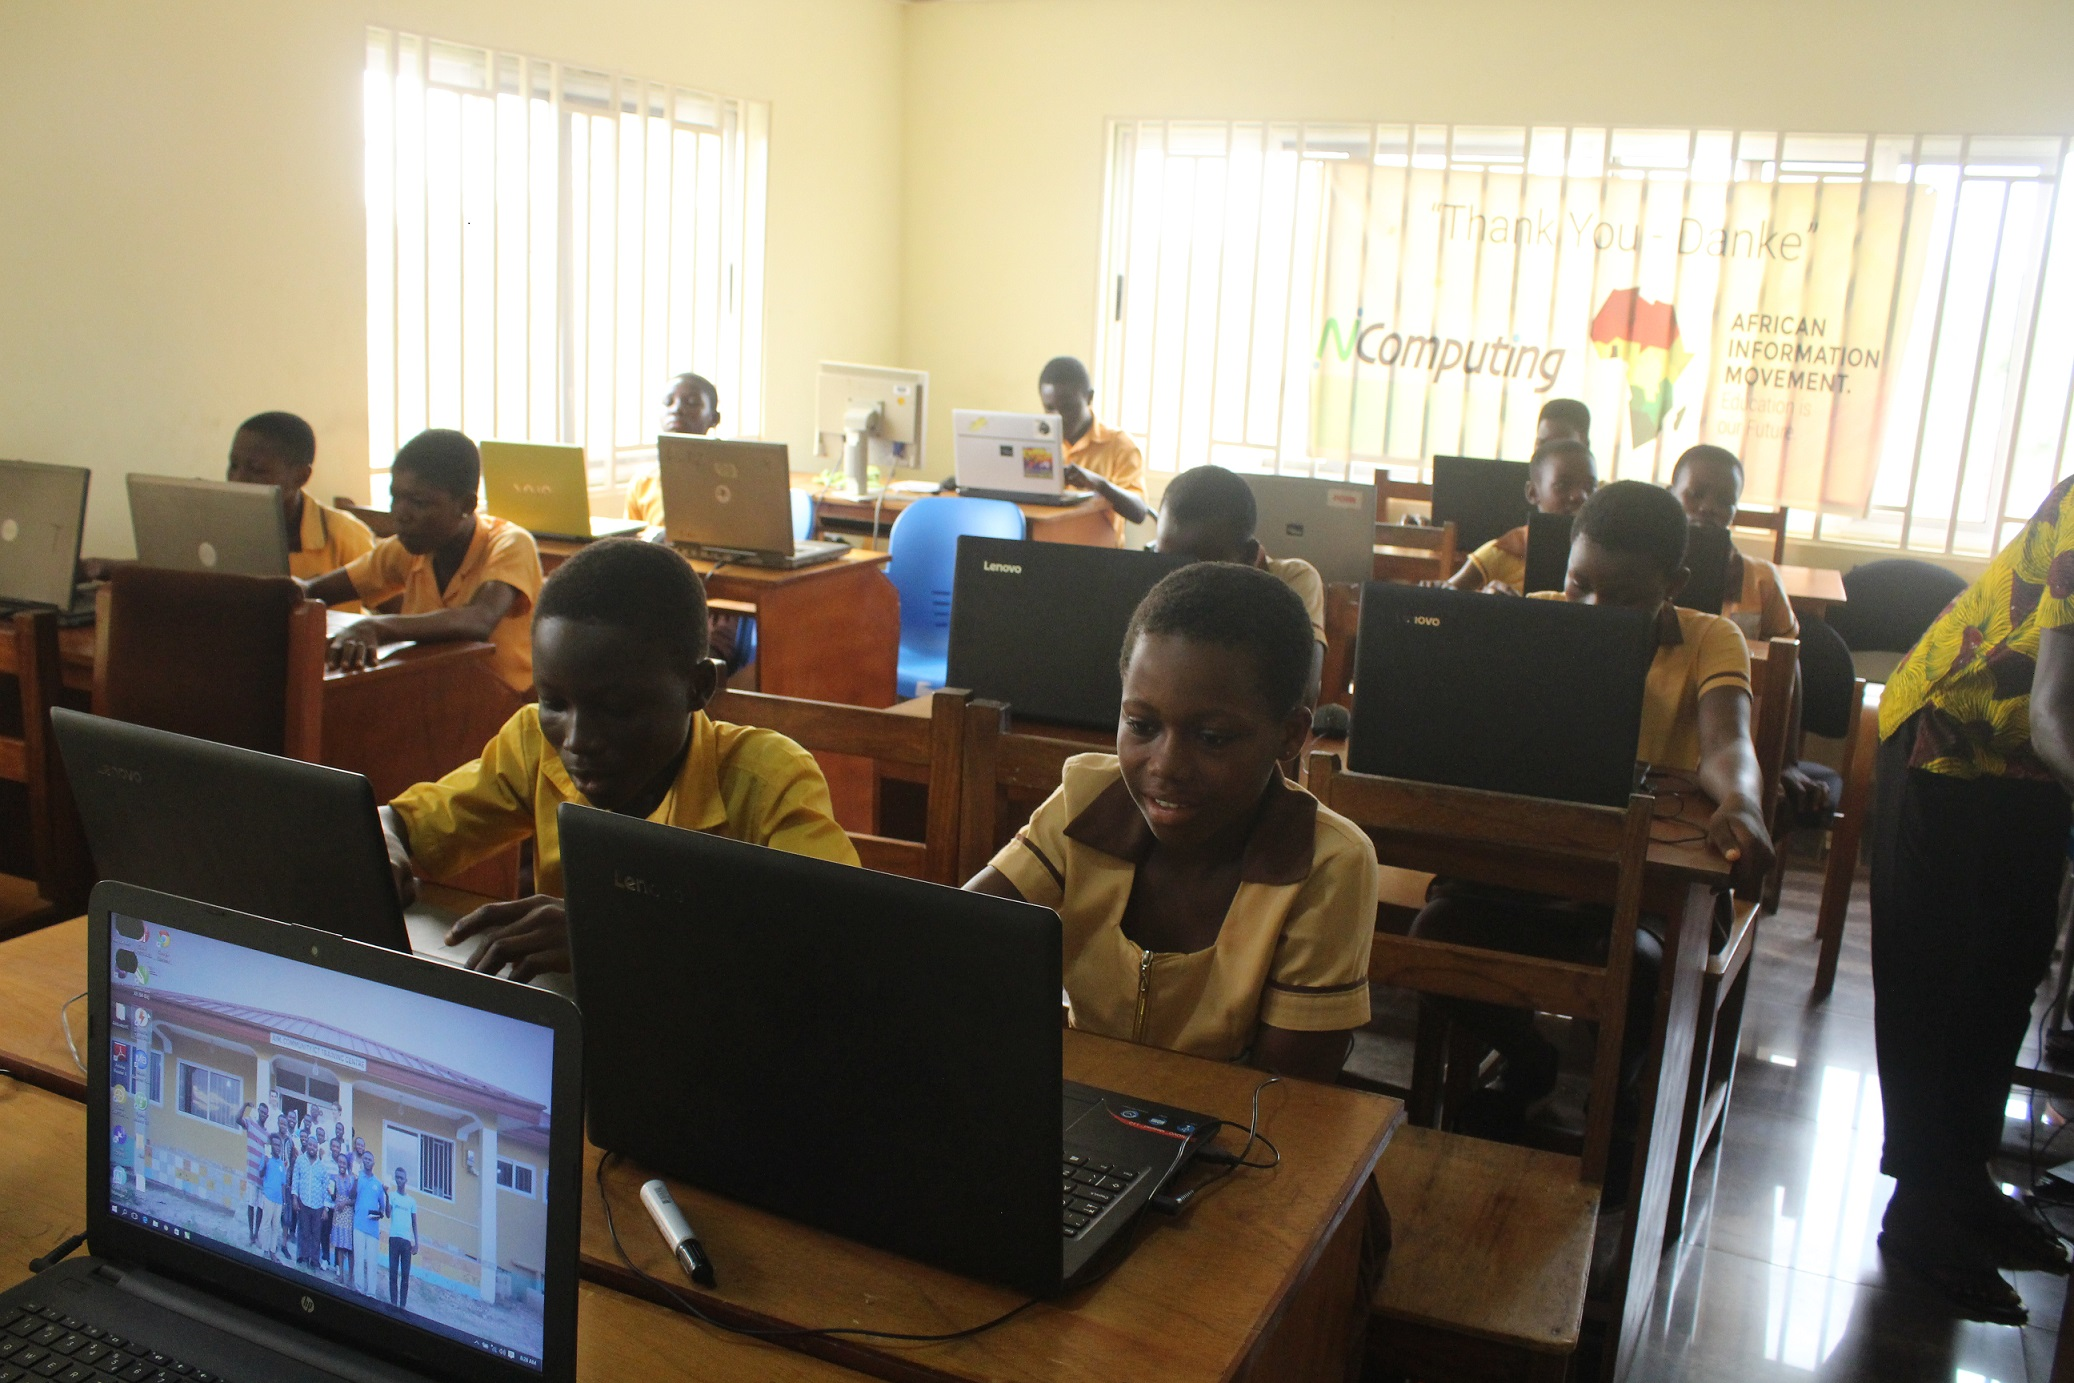 ICT WORKSHOP CONTINUES AFTER 2018 CHRISTMAS HOLIDAY